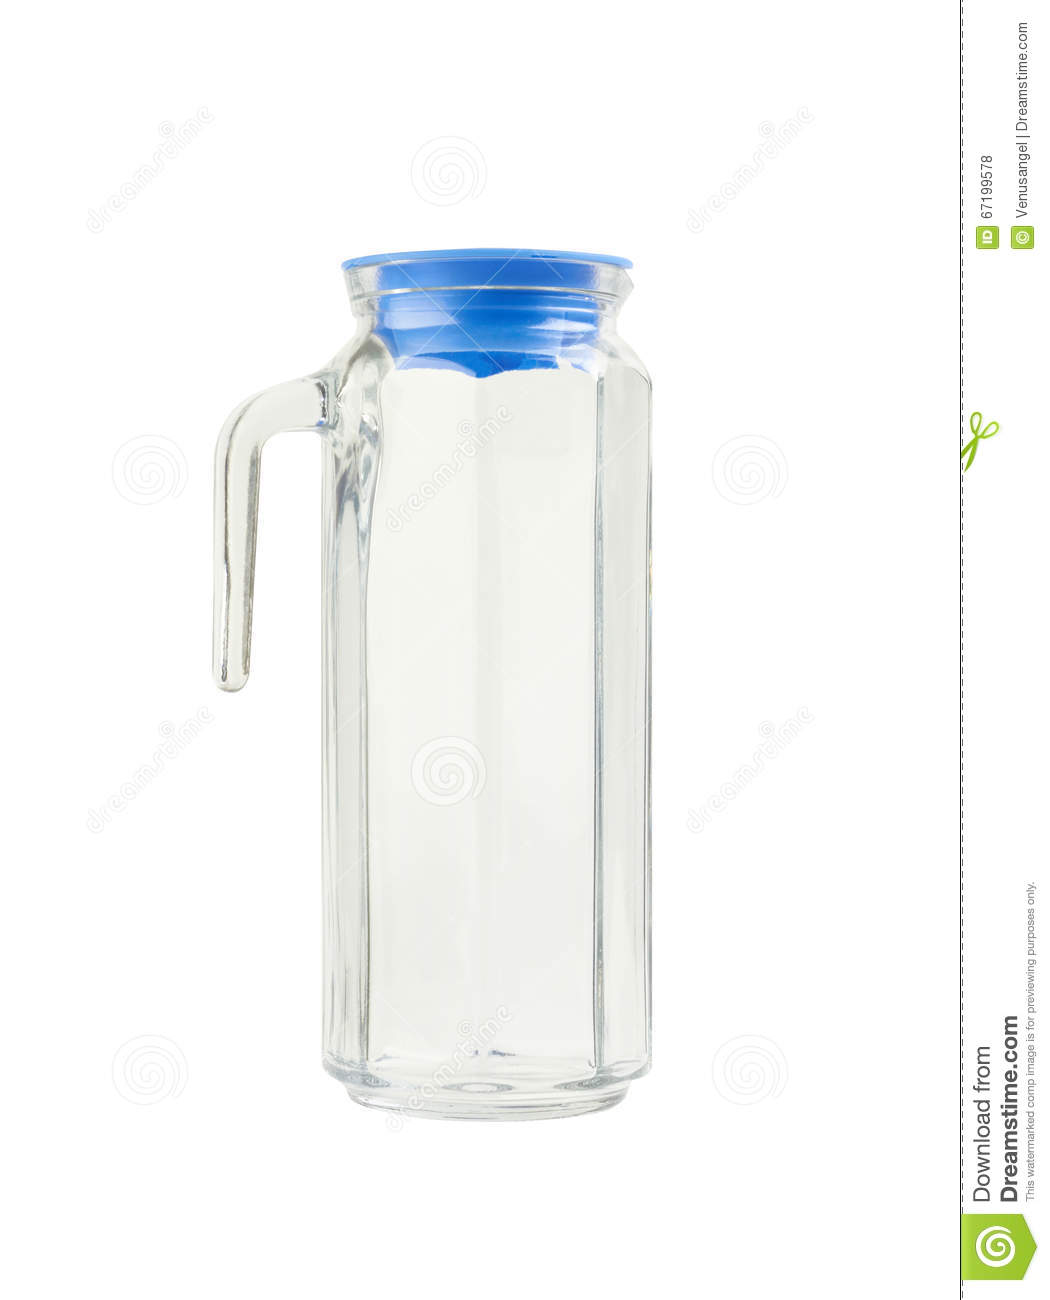 Small Glass Pitcher With Lid Glass Pitcher With Lid Stock Photo Image 67199578